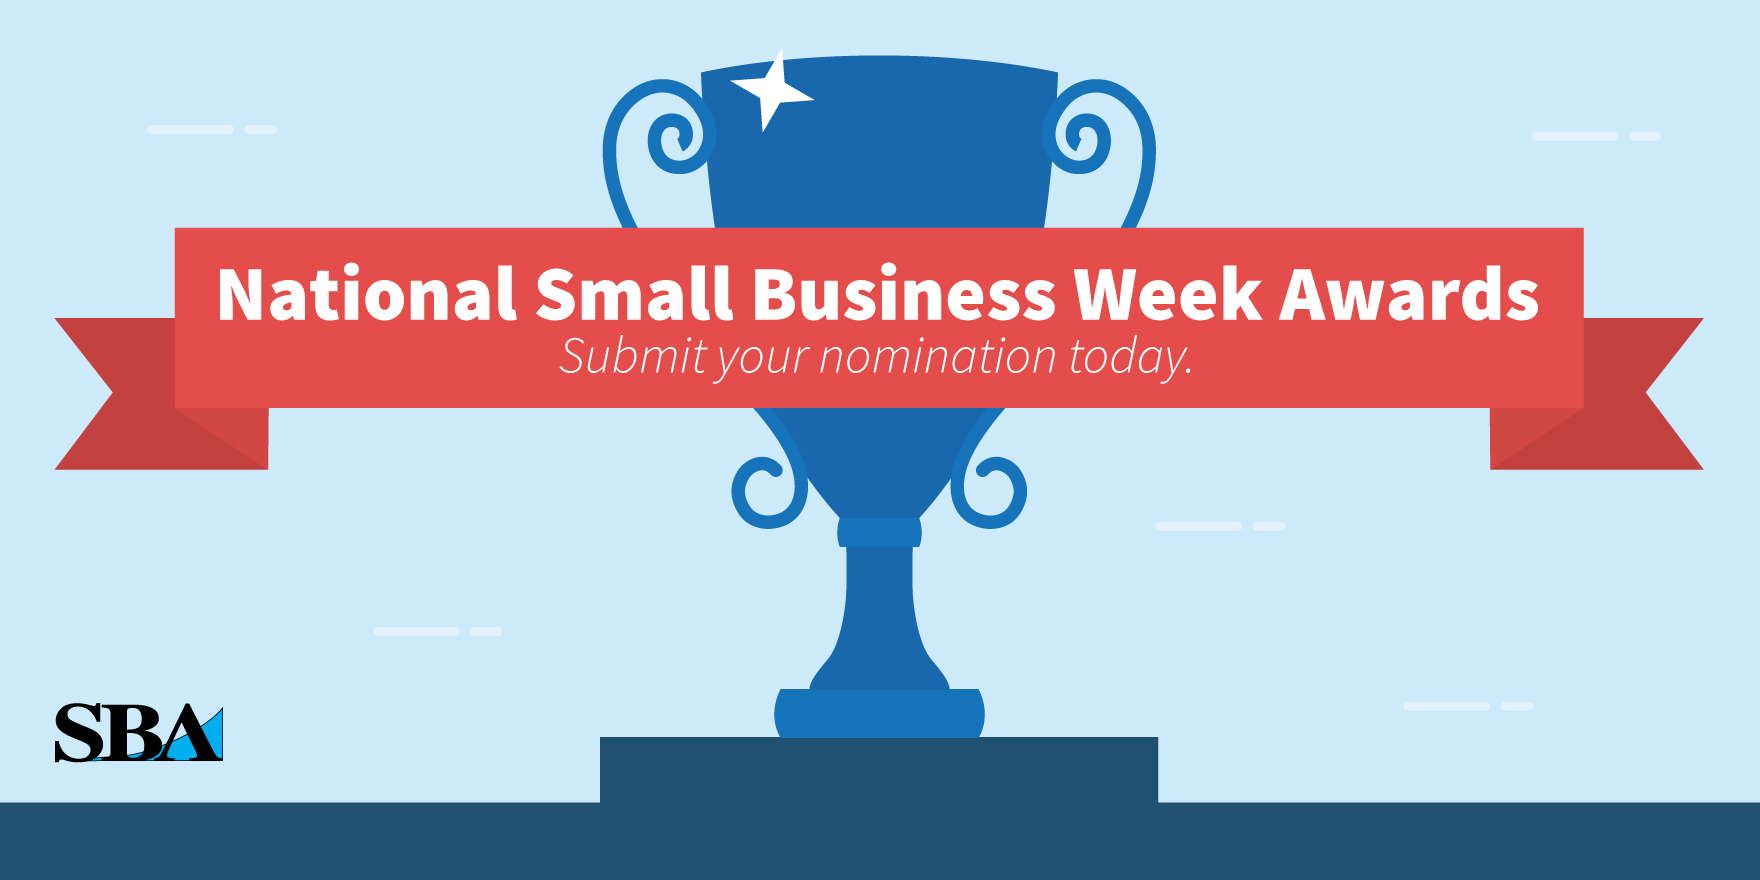 Submit your nomination for the National Small Business Week Awards